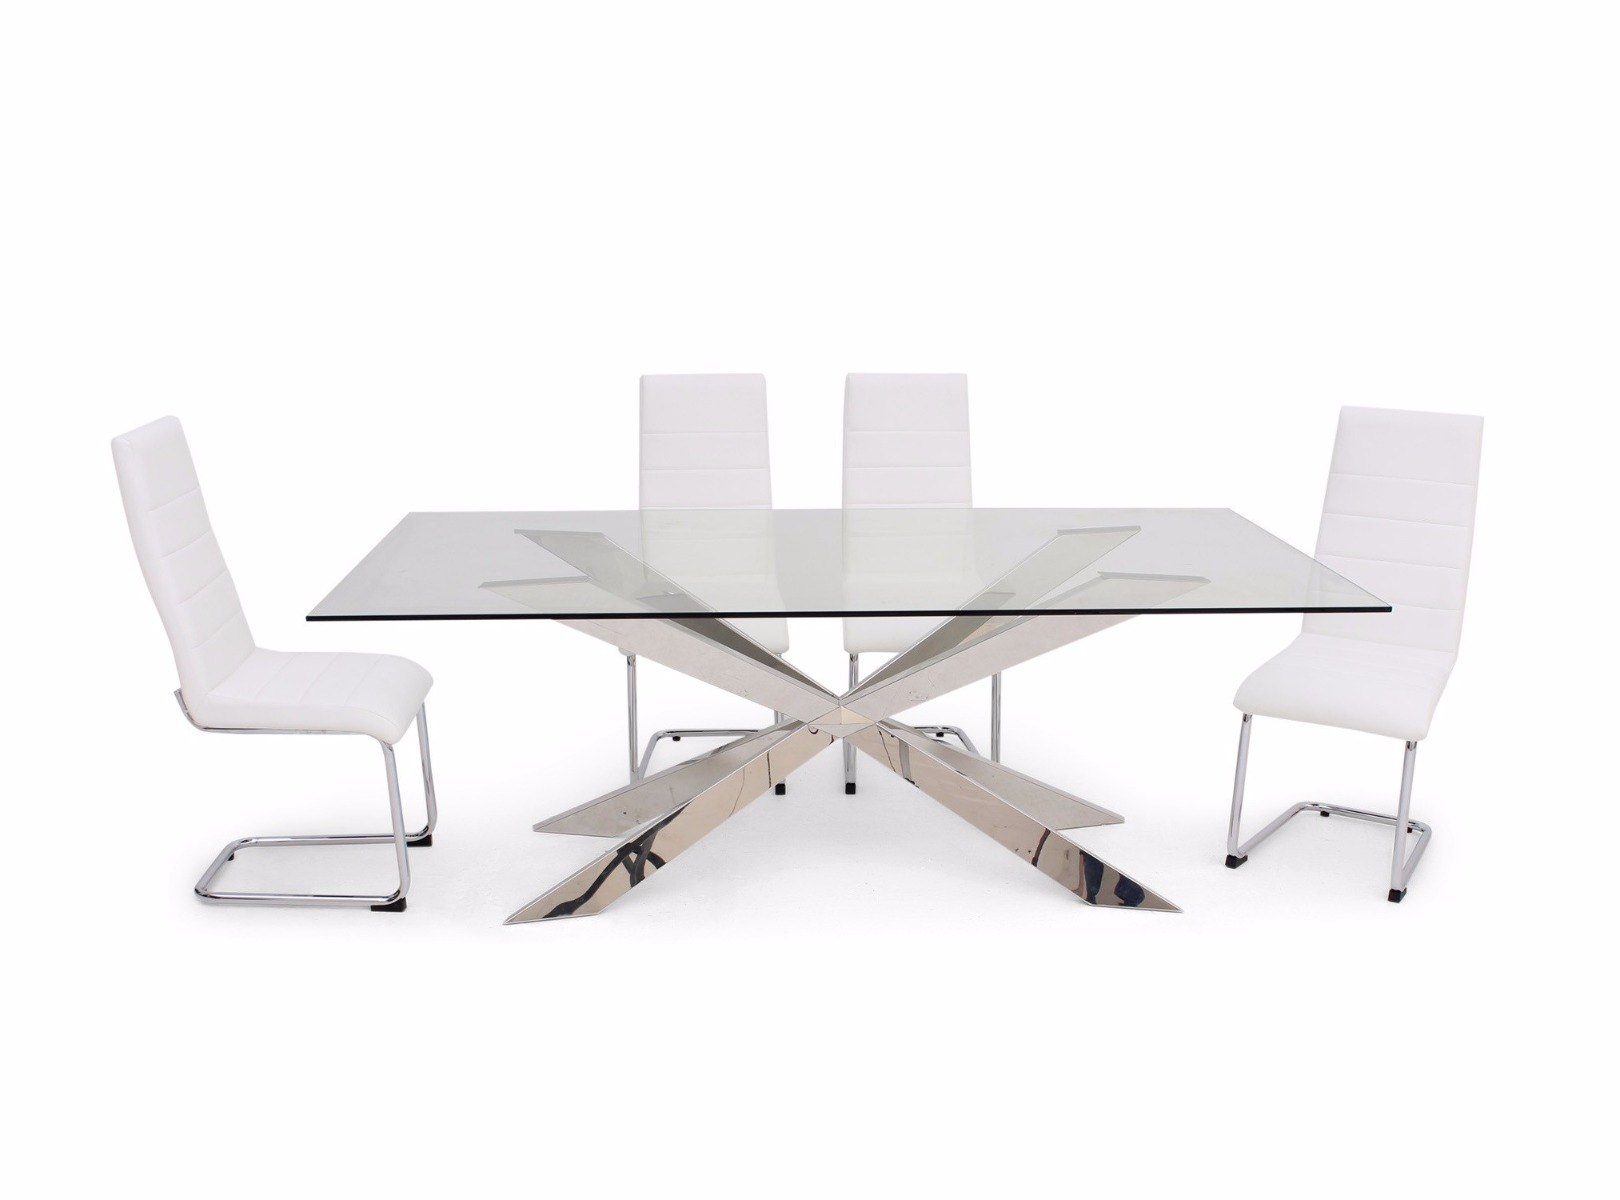 https://www.firstfurniture.co.uk/pub/media/catalog/product/g/a/gabriella_table_with_hugo_white_chairs_1_4.jpg